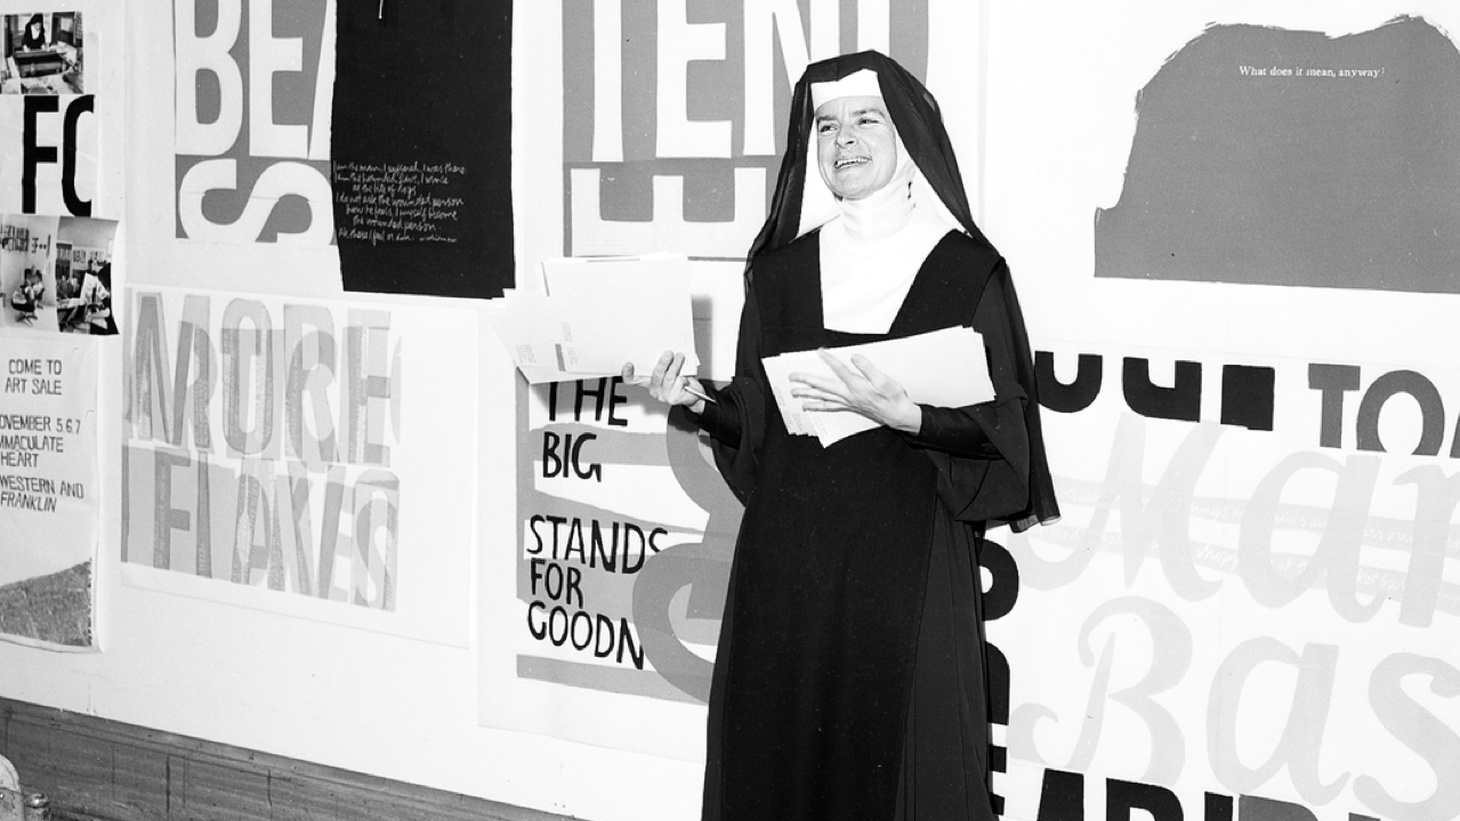 Edward Goldman shares his newly discovered love of the life and work of a uniquely interesting woman, artist, and nun.